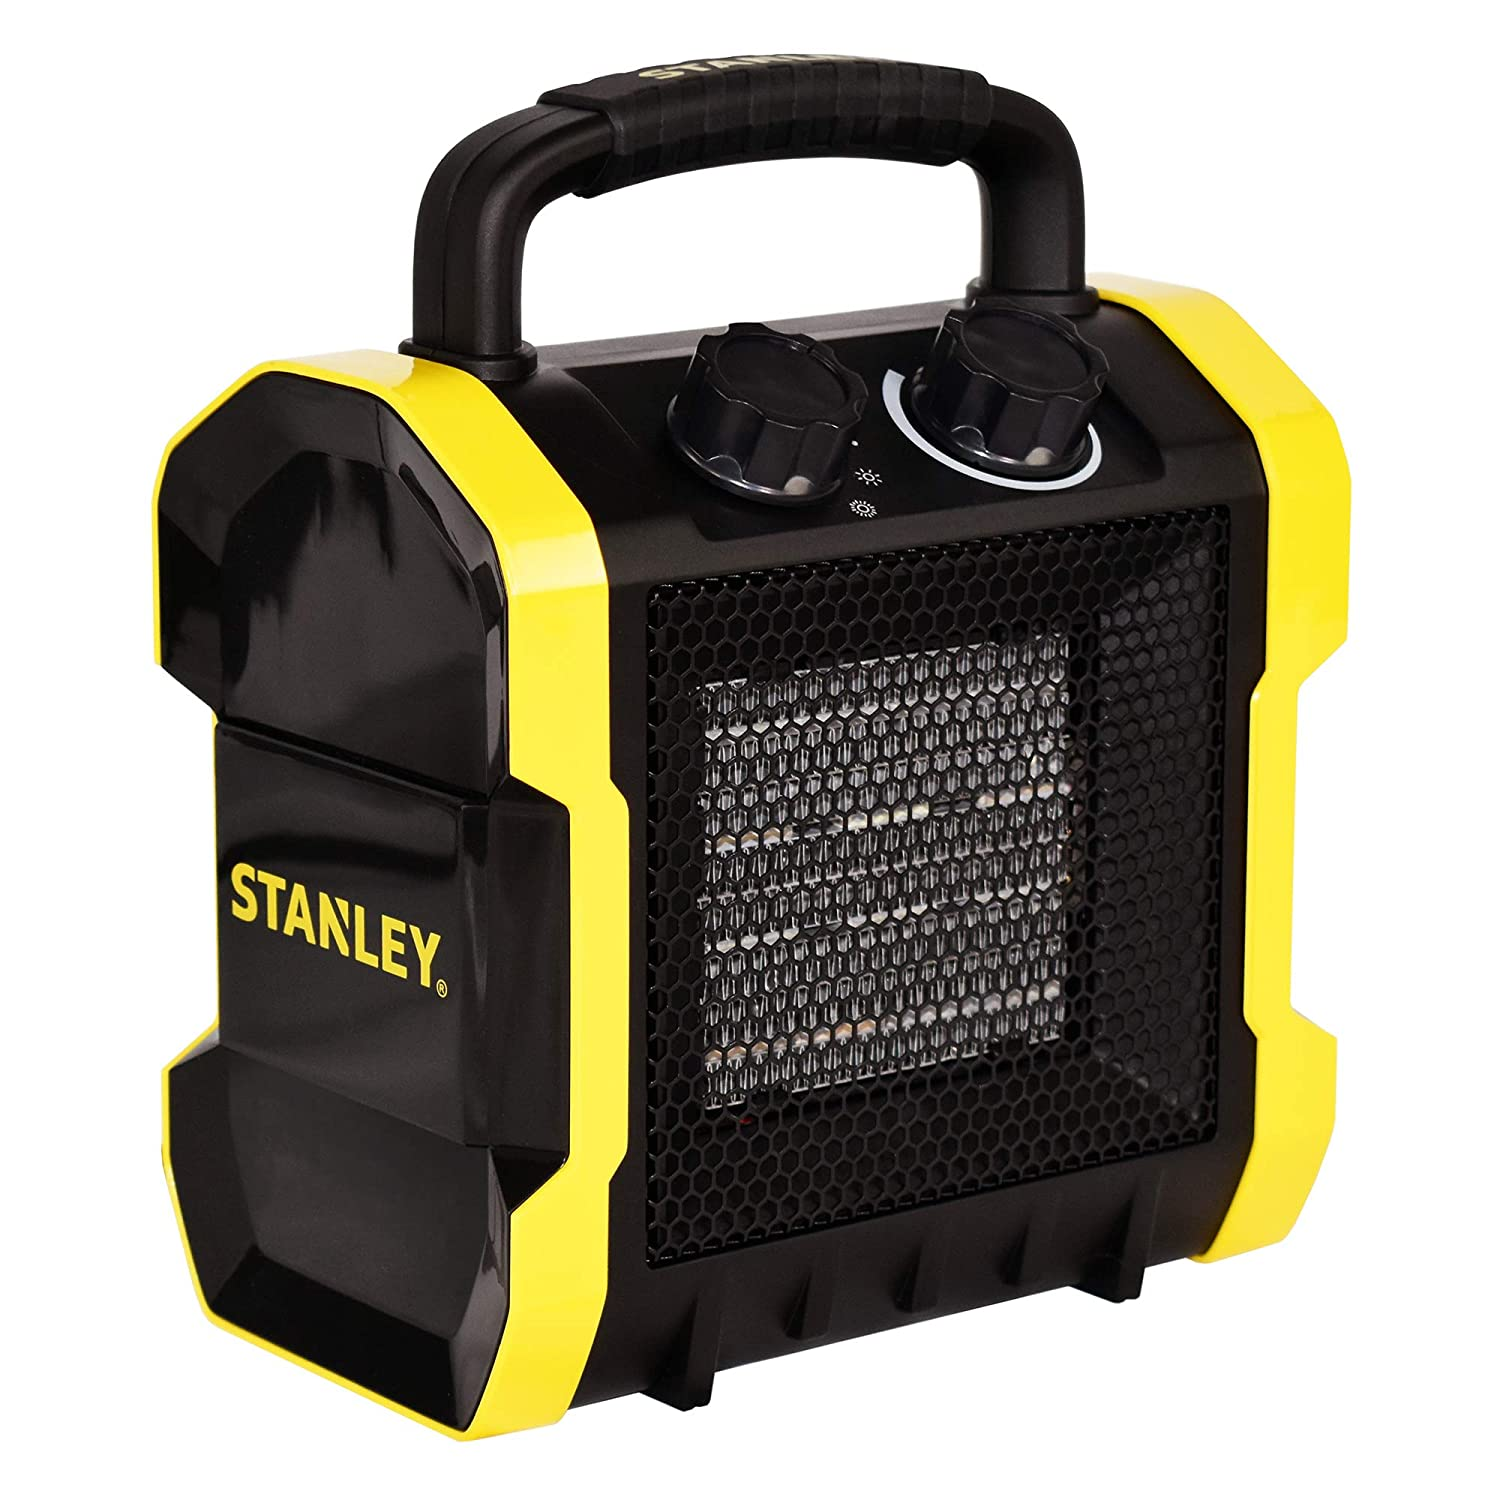 STANLEY ST-222A-120 Heavy-Duty Electric Heater, Black, Yellow